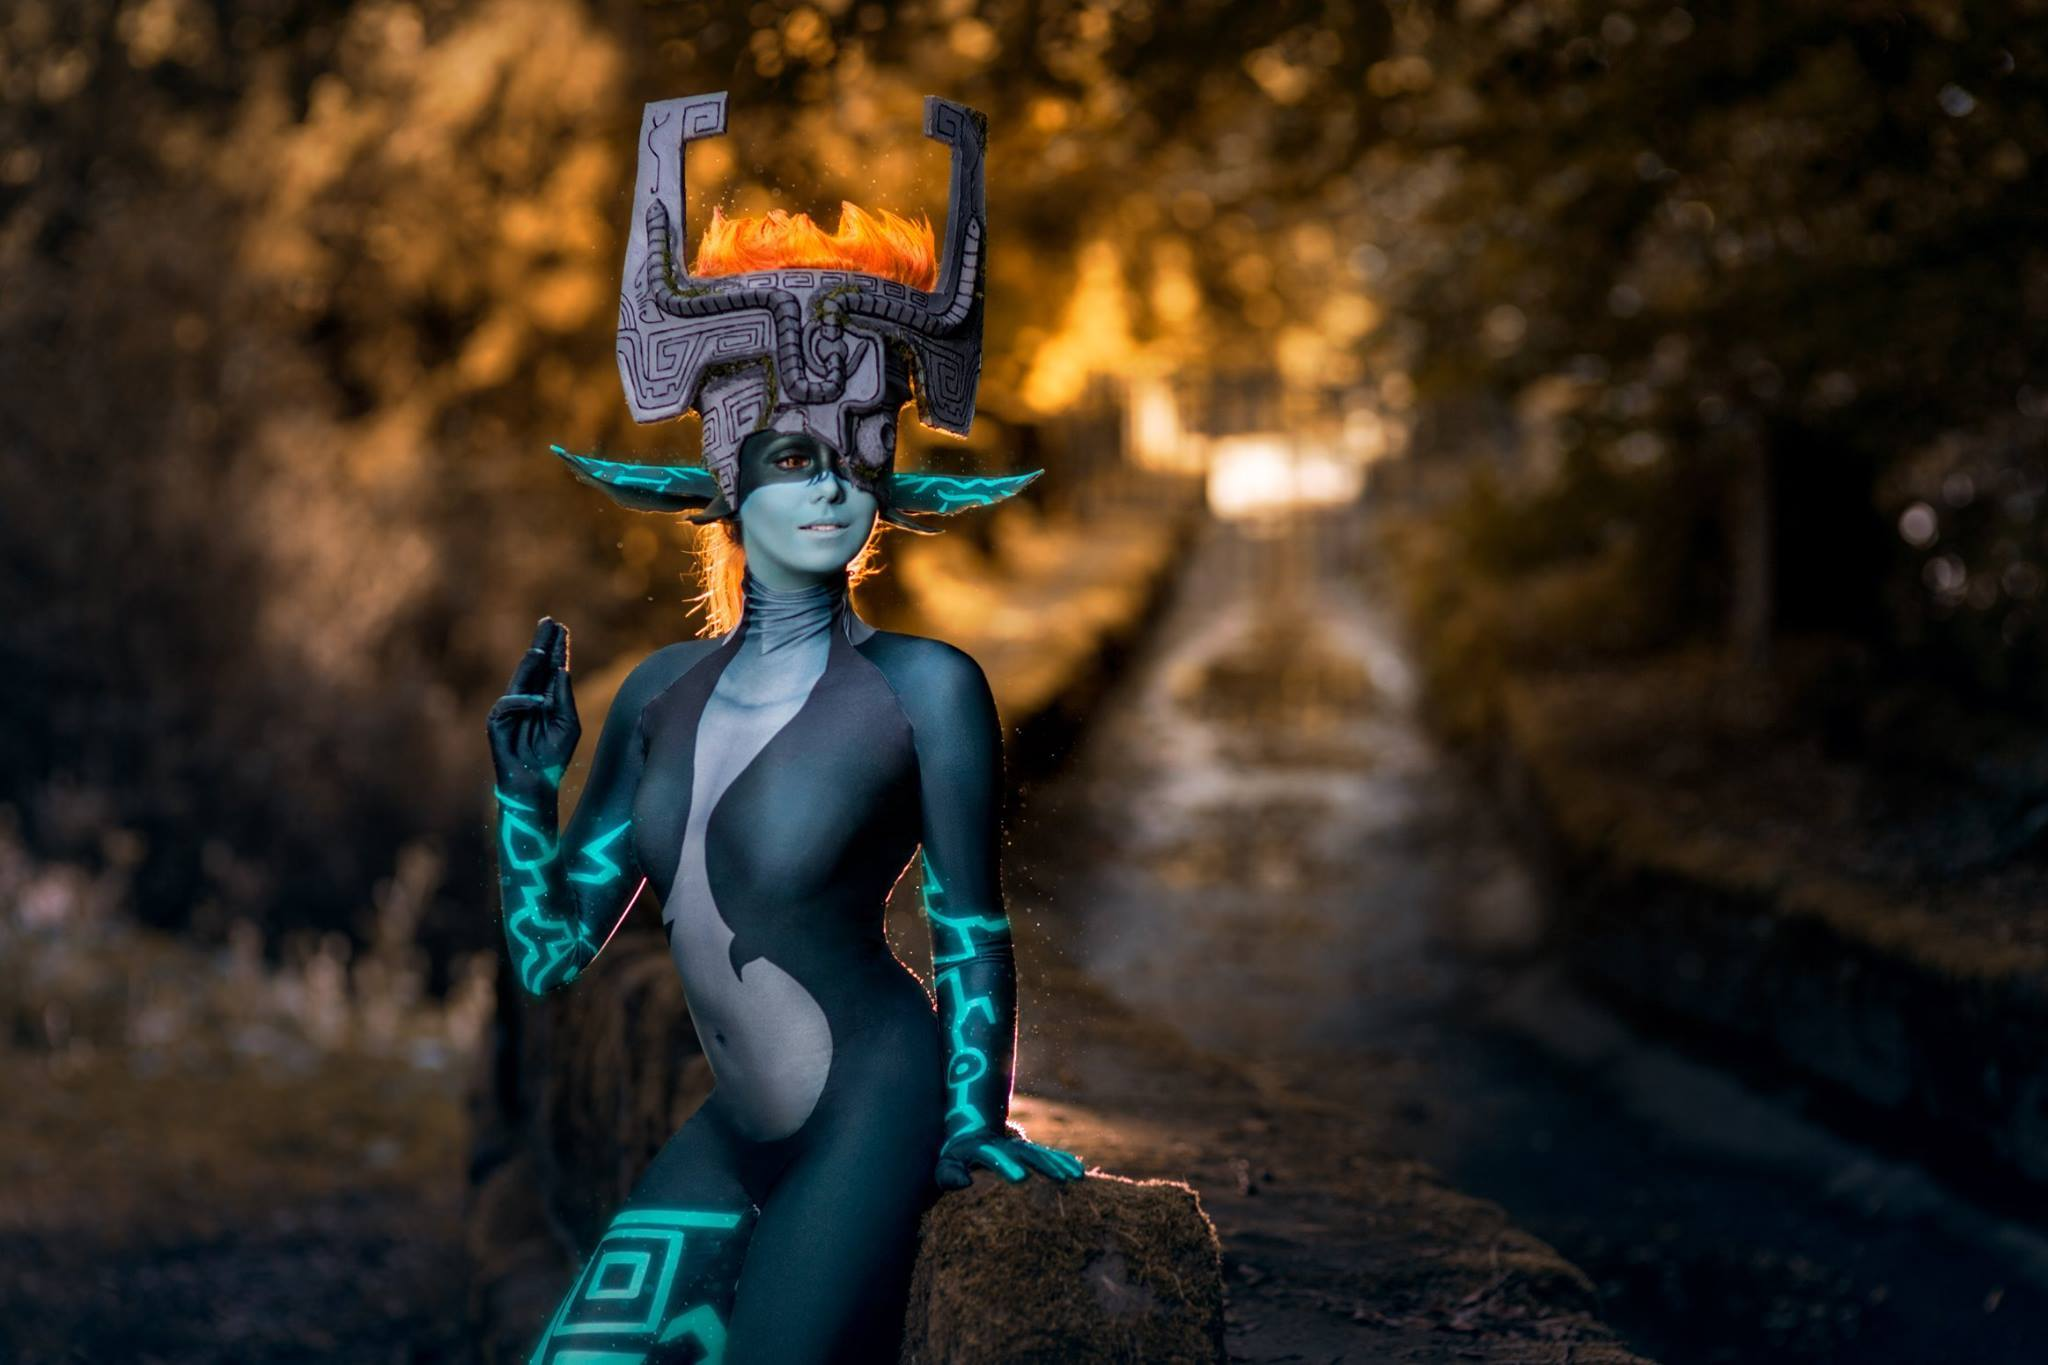 Midna z The Legend of Zelda: Twilight Princess